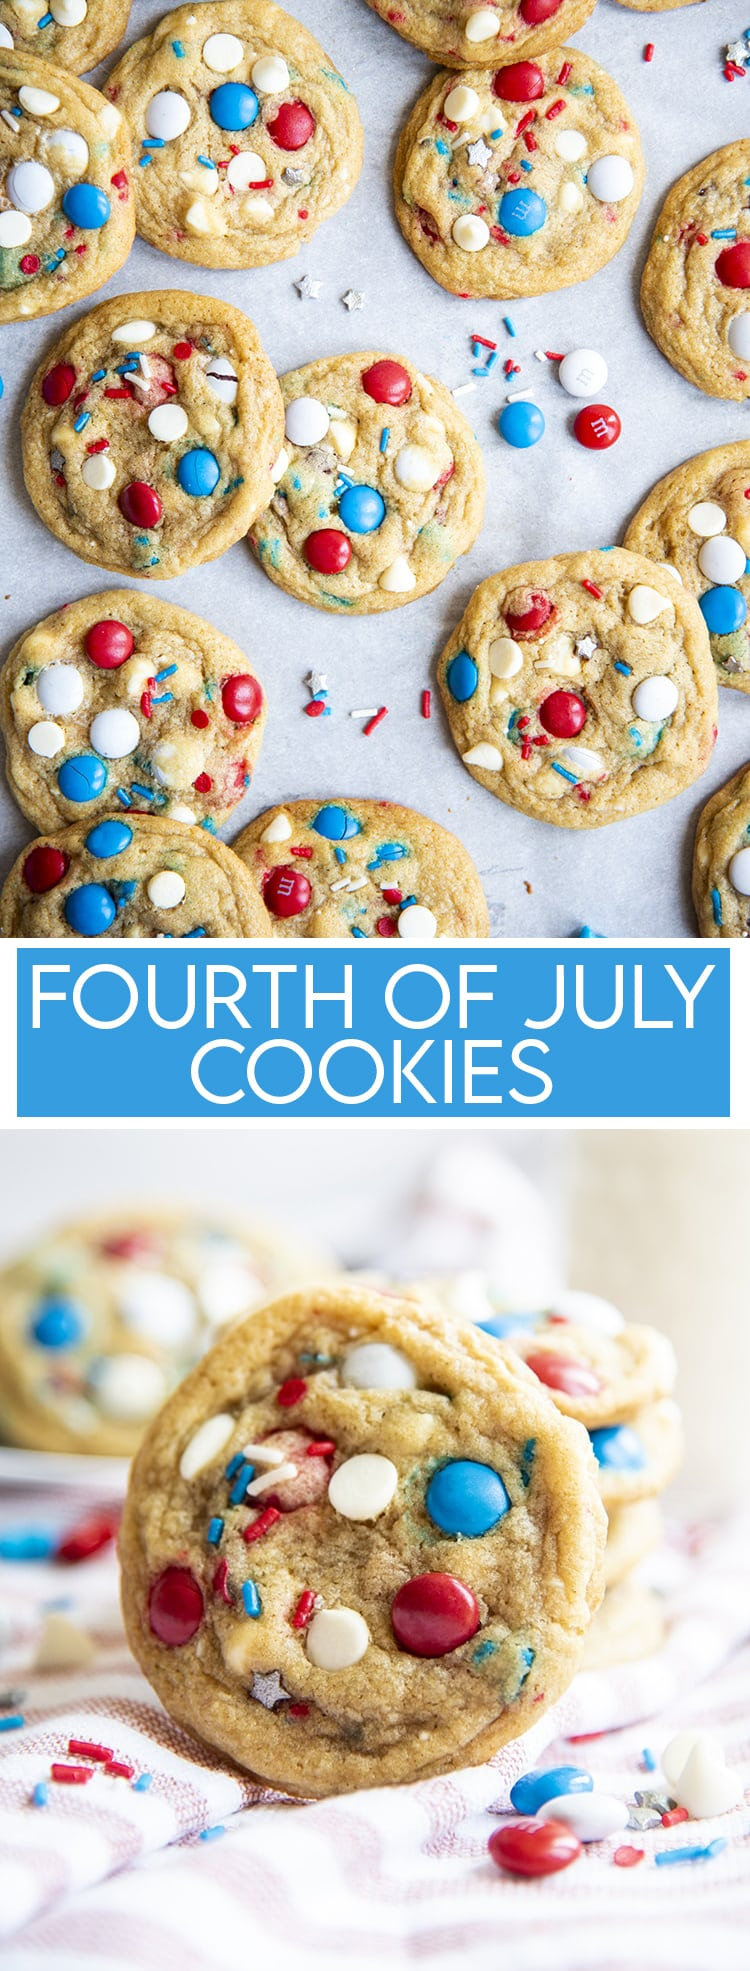 Fourth of July Cookies with red, white, and blue m&ms and white chocolate chips on parchment paper. With a second photo underneath of a cookie sitting upright with text overlay for pinterest.